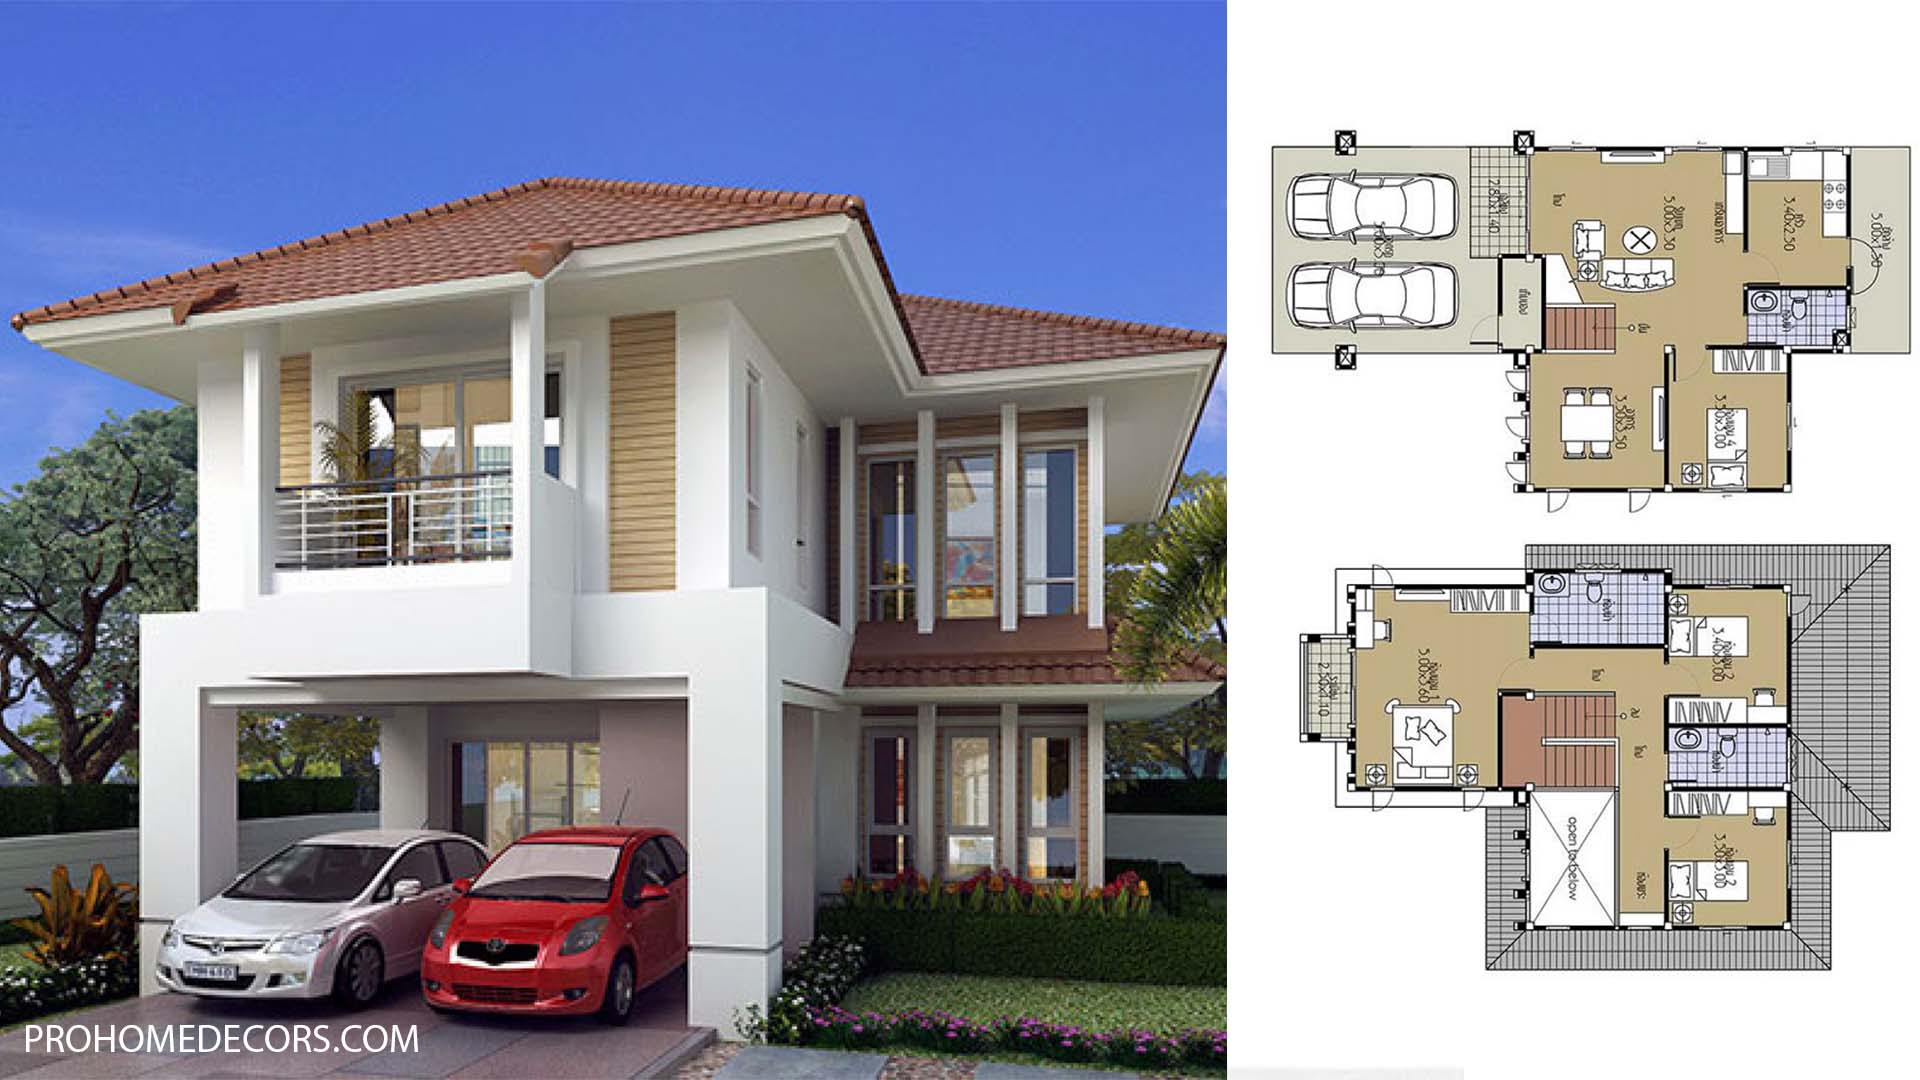 House-Plans-8.5x13.5-with-4-Bedrooms